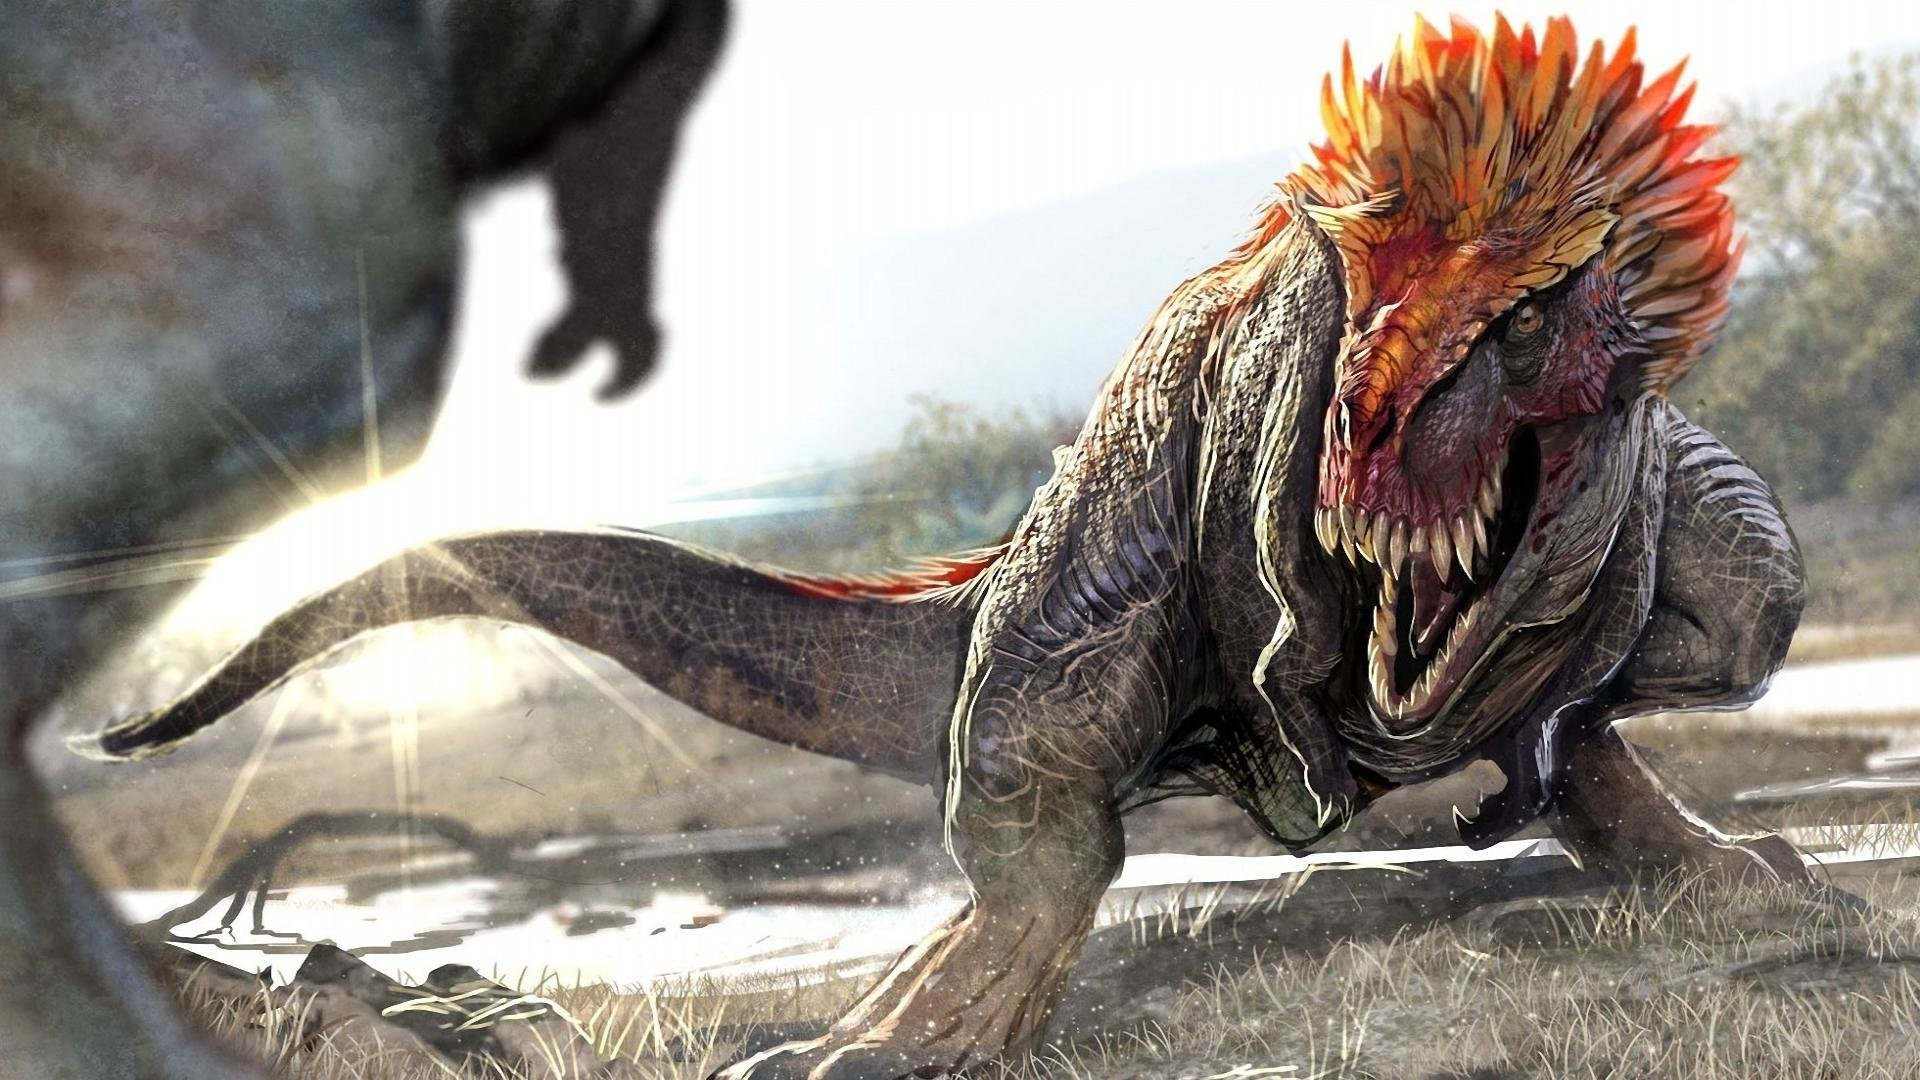 Awesome Dinosaur free wallpaper ID:73894 for full hd desktop